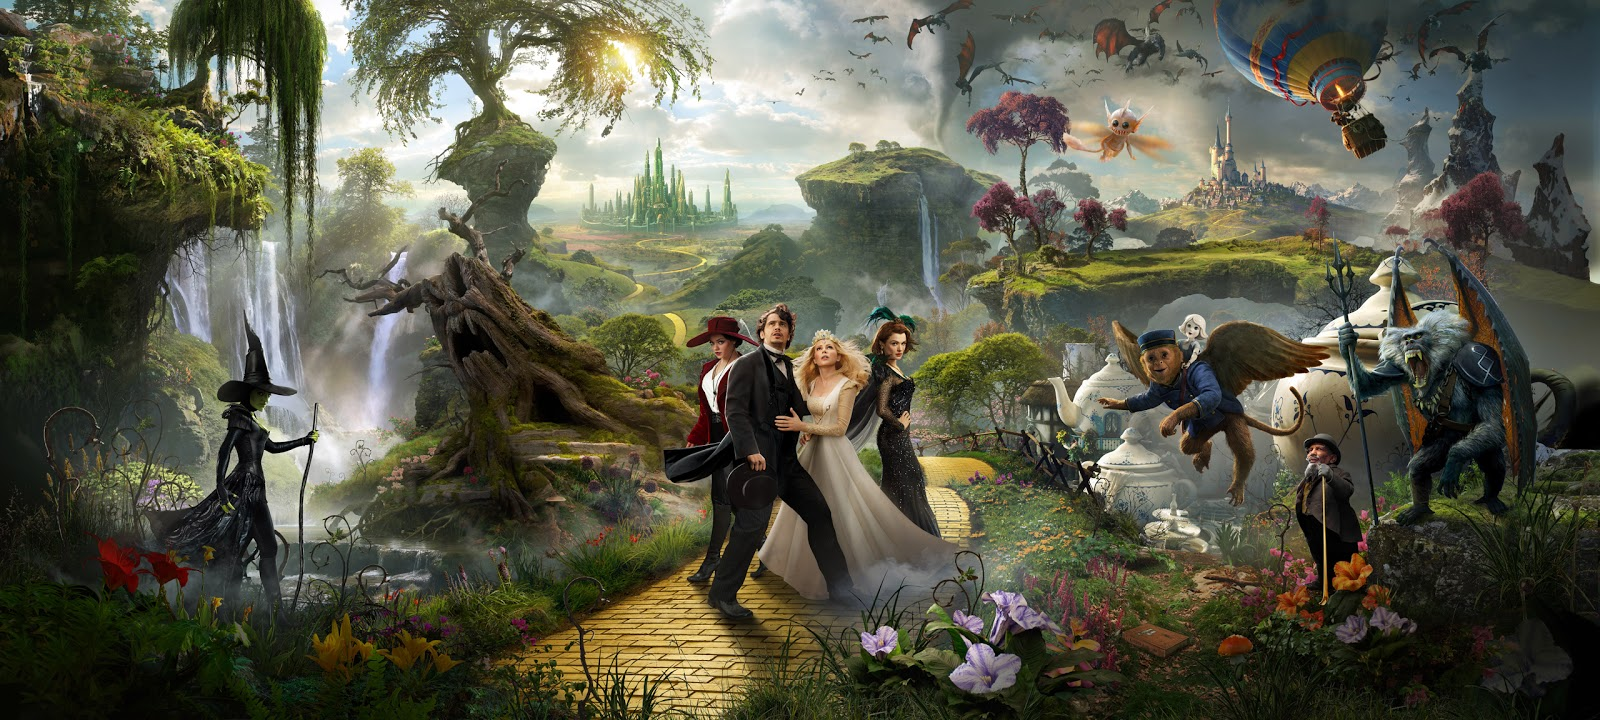 Free Download Fiction Oz The Great And Powerful Desktop Wallpaper